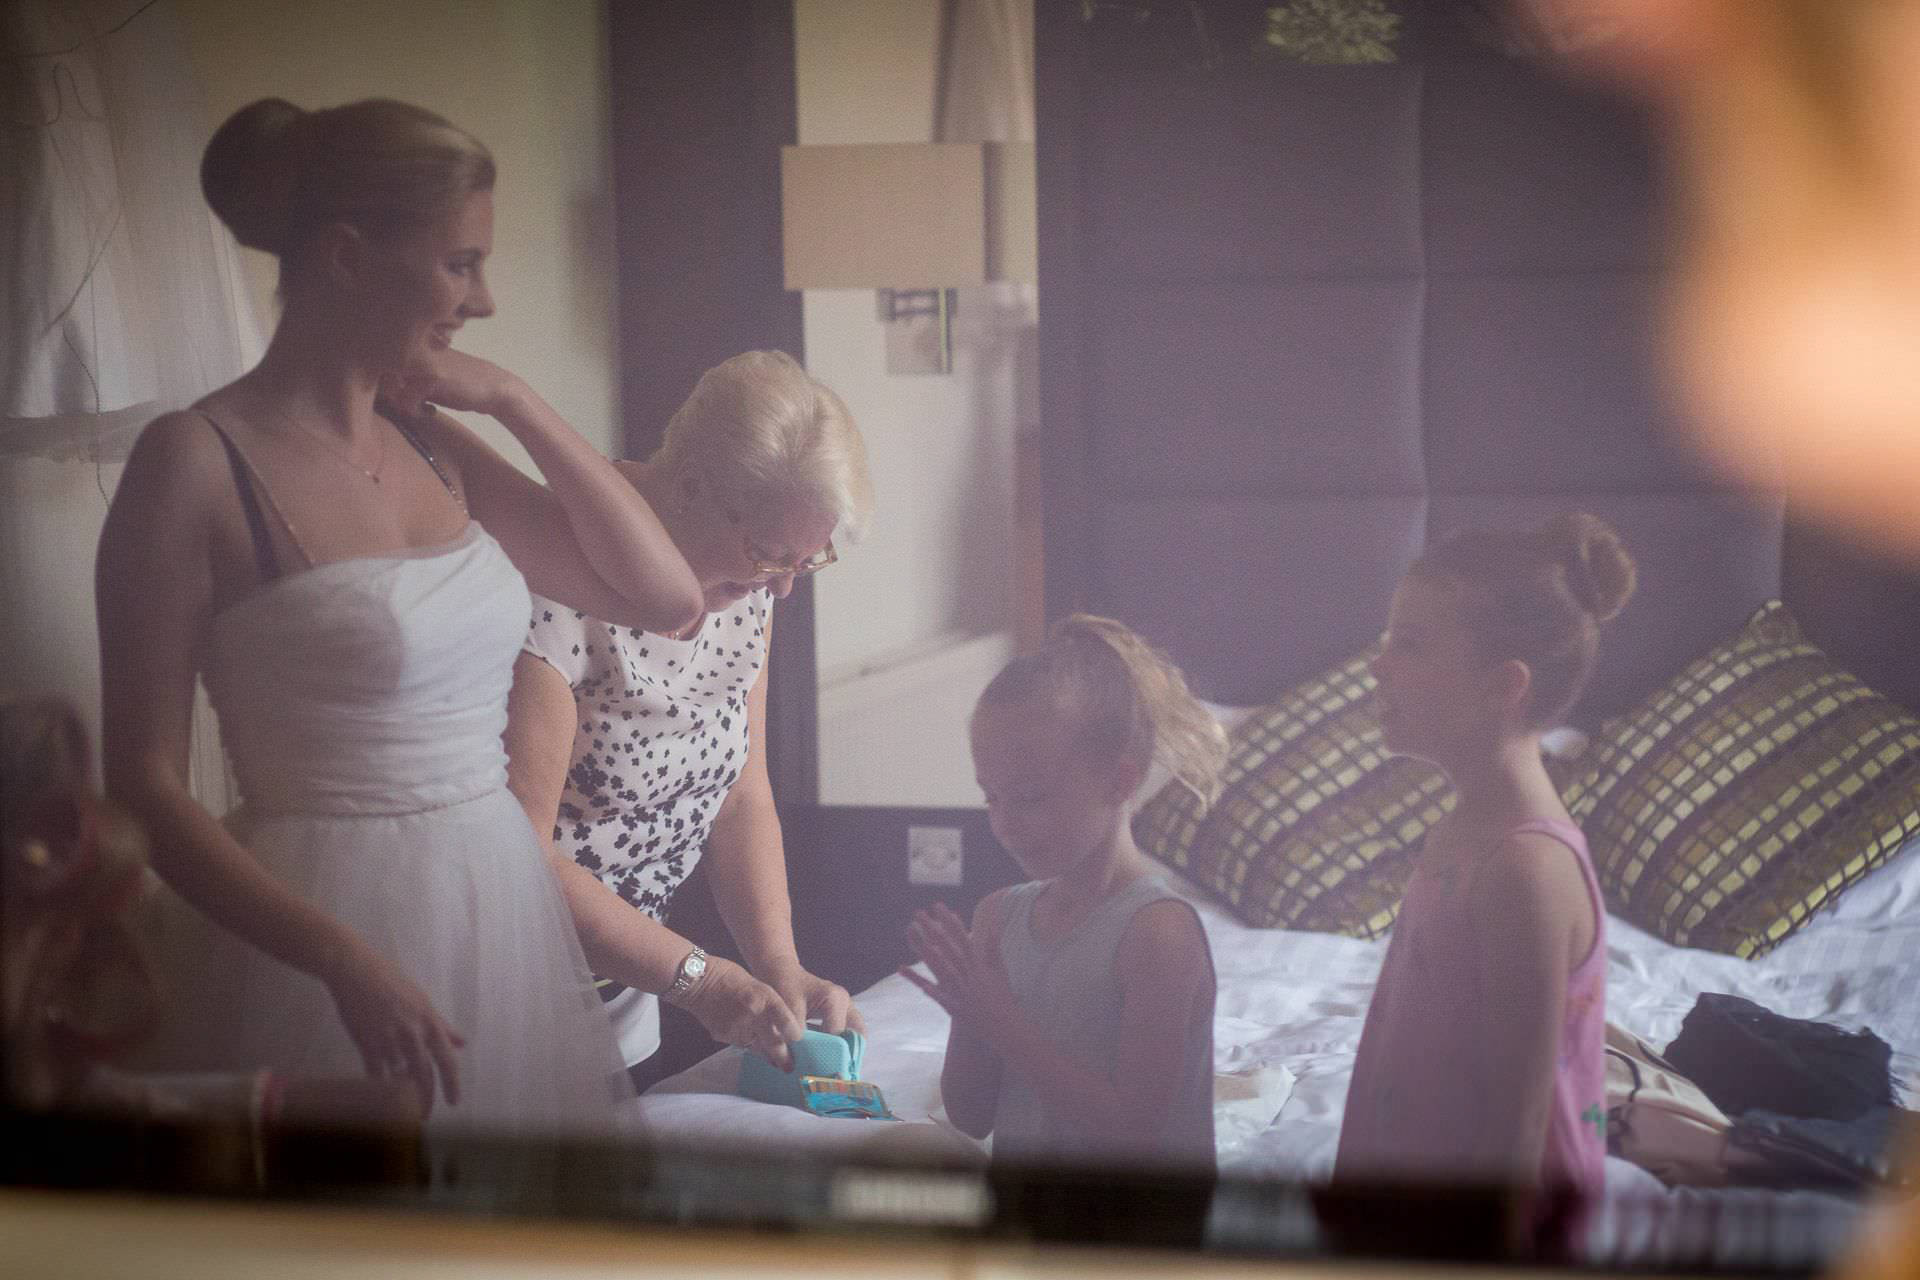 Wotton House wedding reflection in the mirror